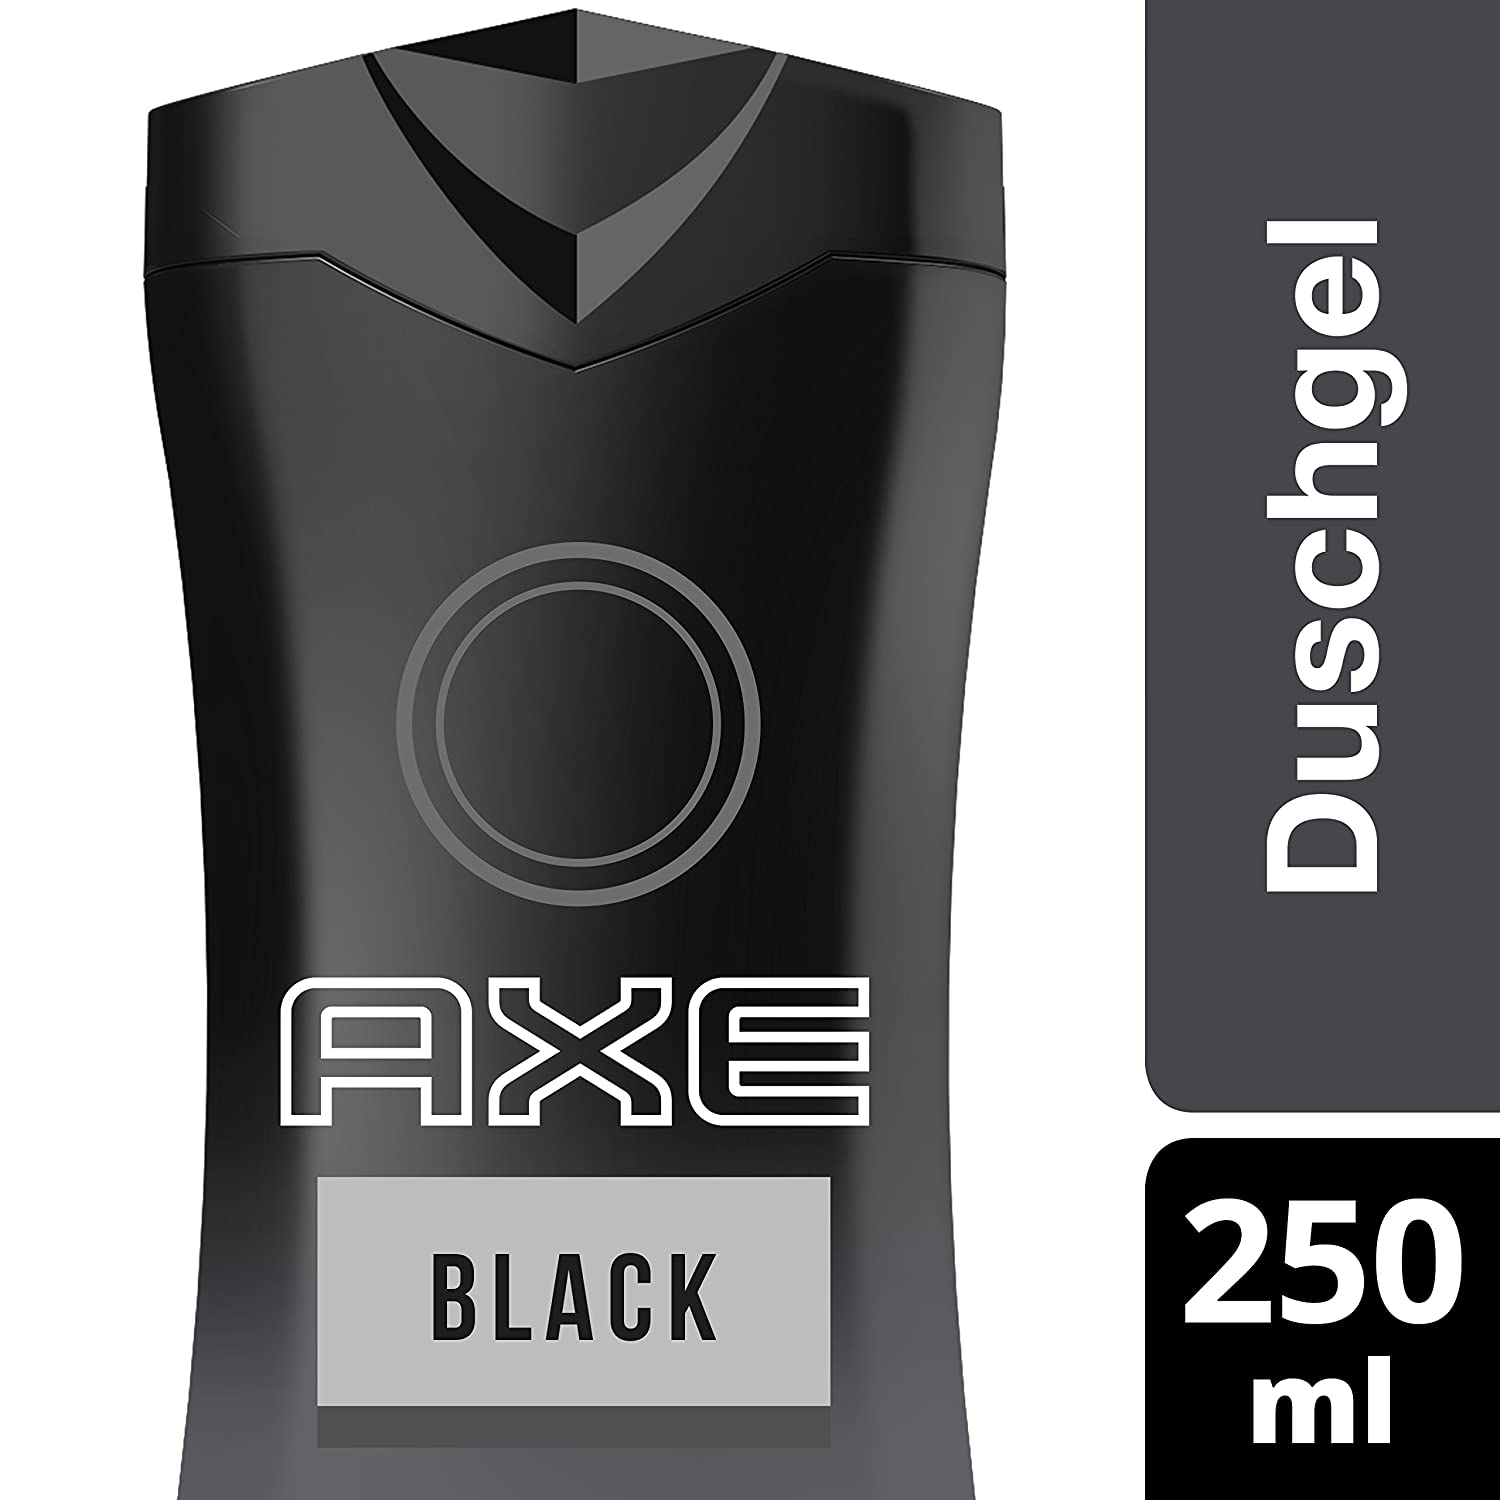 [amazon.de] Axe gel za tuširanje Black 6 x 250ml za 6,96€ umjesto 13€